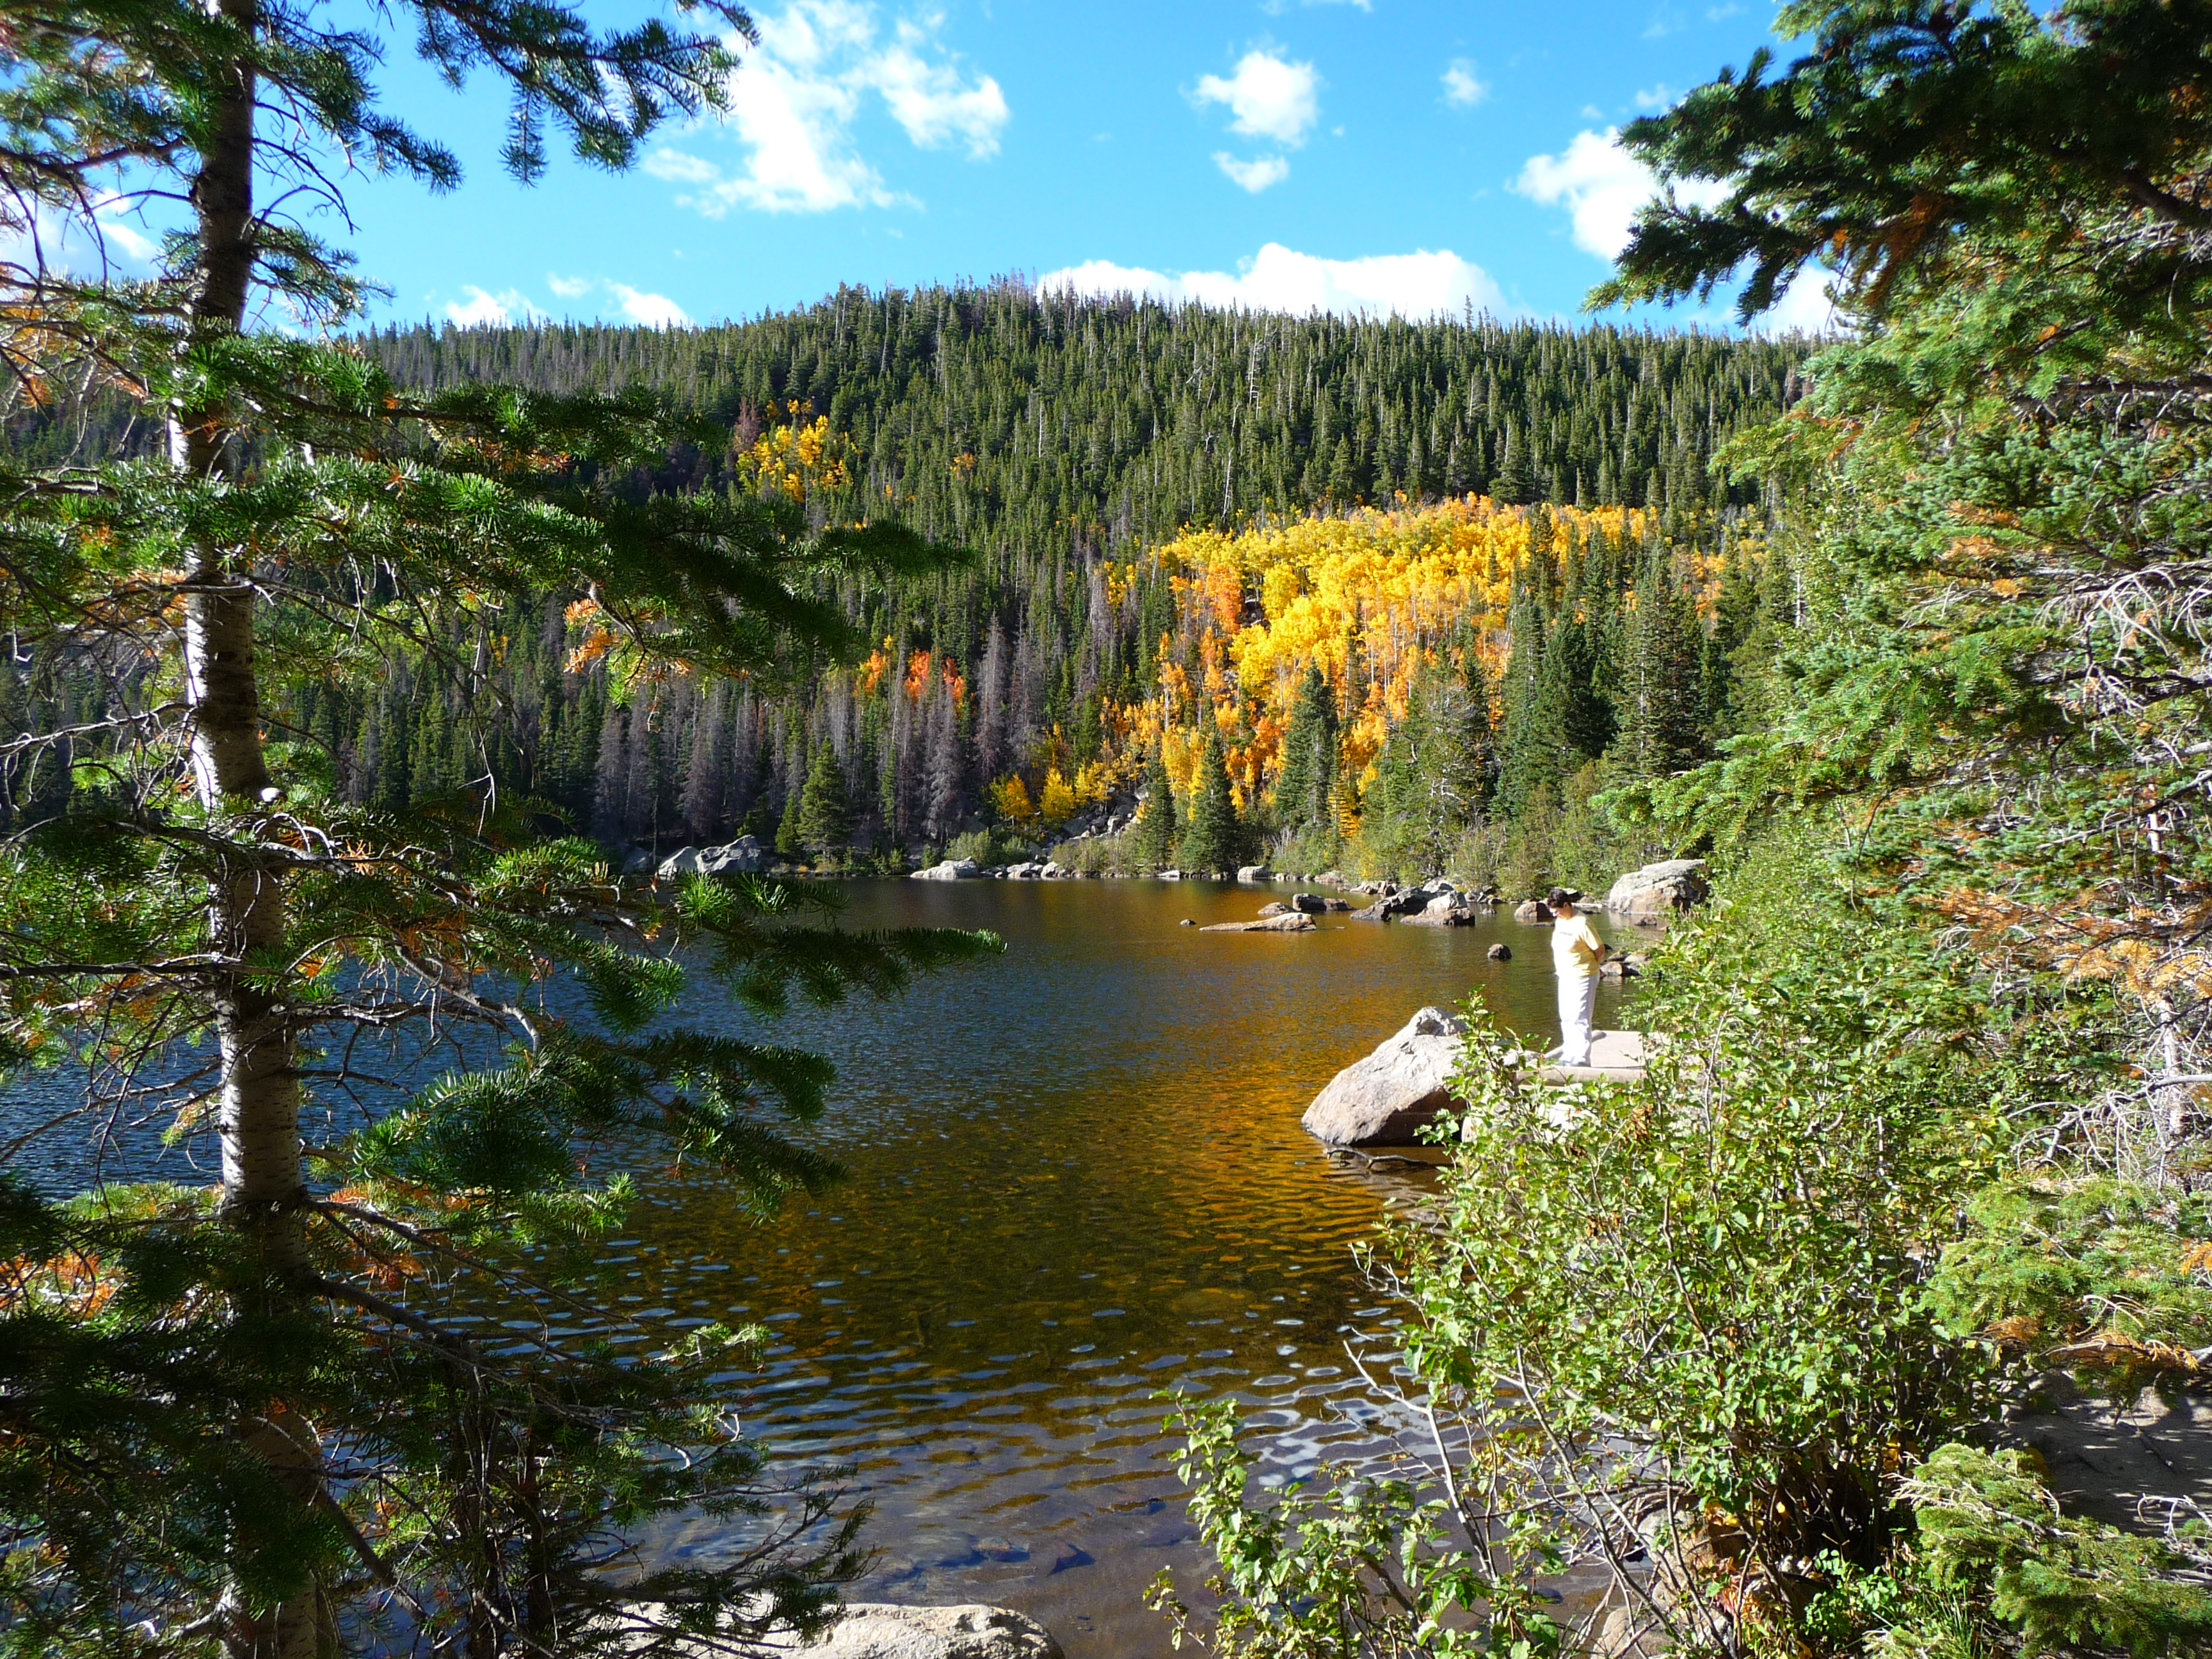 rocky mountain national park September 4, 2015 marks the 100th anniversary of the dedication of rocky mountain national park each year, more than 3 million people visit the park that protects mountains, tundra, meadows, wildlife, lakes, rivers and incredible scenery.